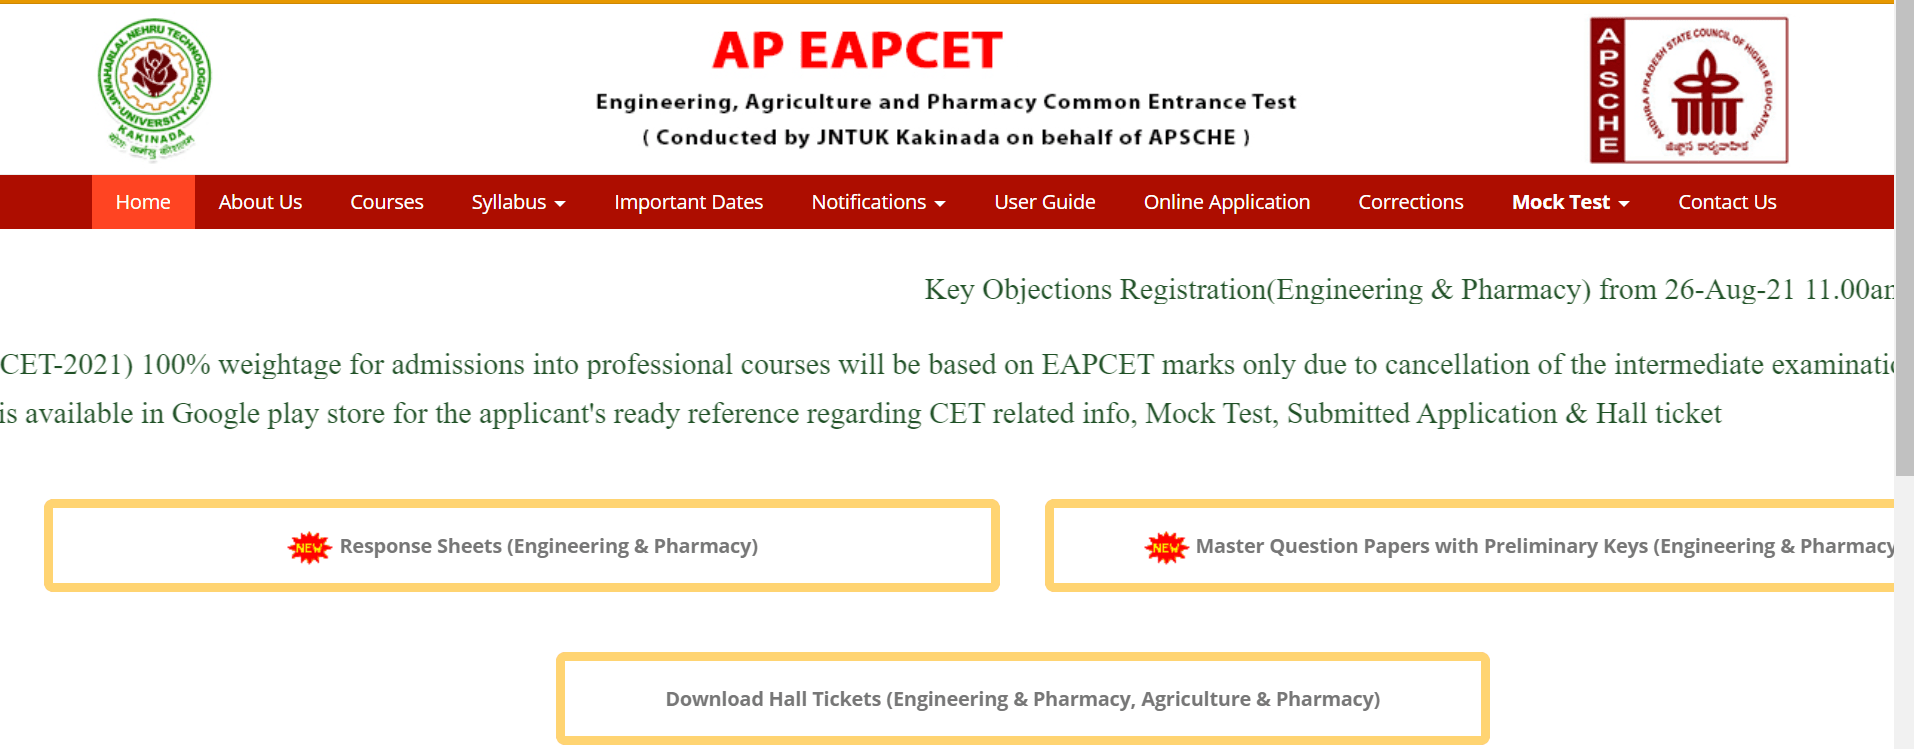 AP EAPCET Counselling Registration 2021